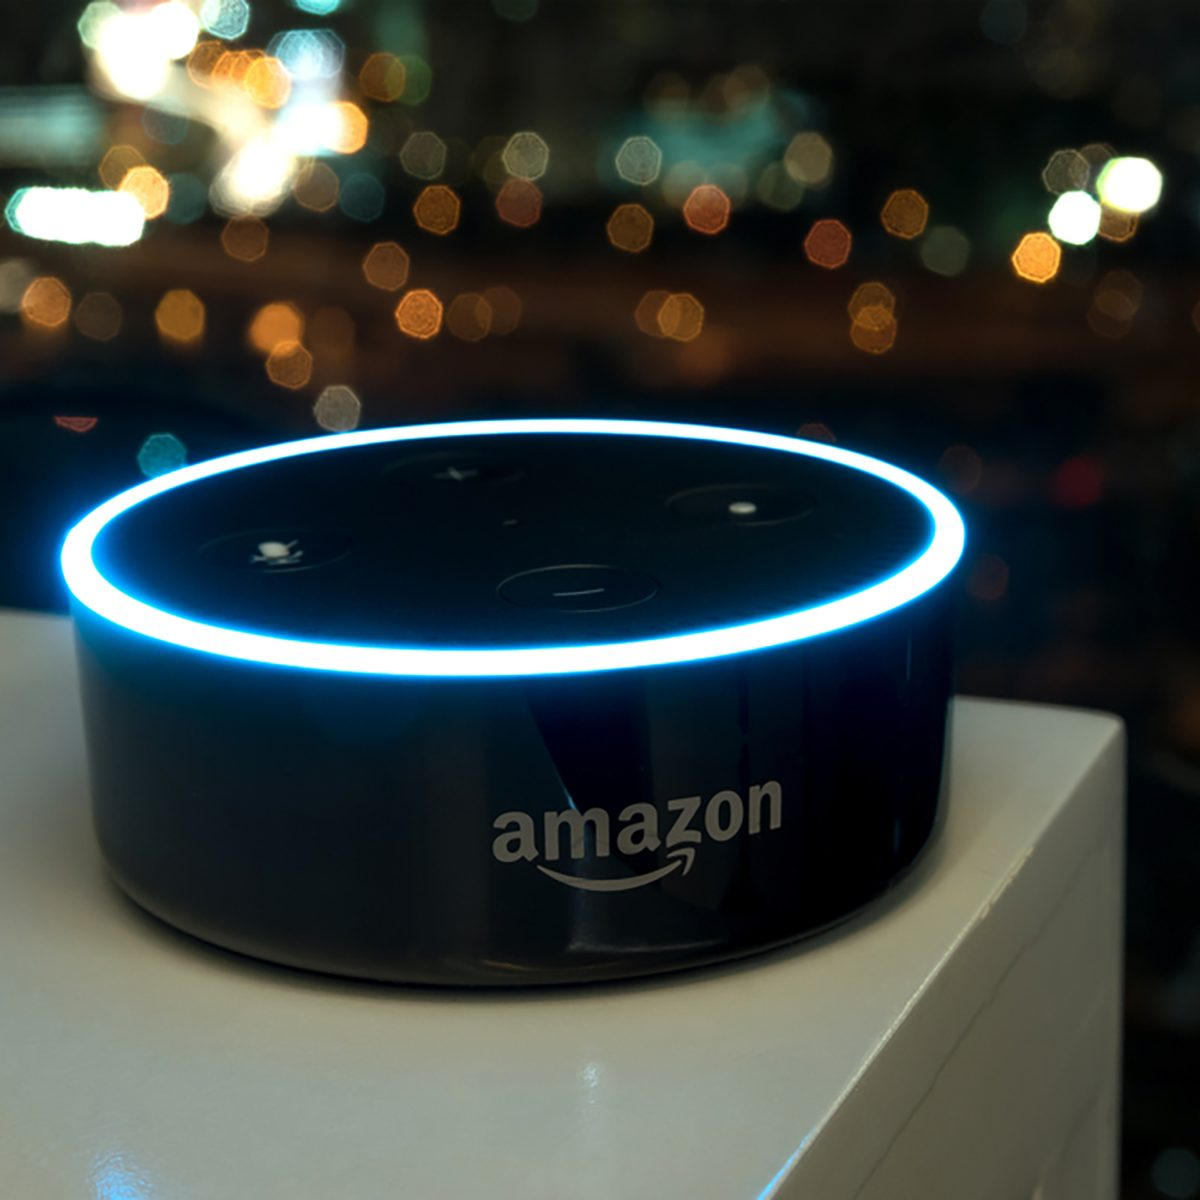 Kuala Lumpur, Malaysia - Fabruary 24 : Selective focus on Amazon Echo dot version 2, the voice recognition streaming device from Amazon on table. February 24 2017 in Kuala Lumpur, Malaysia; Shutterstock ID 593309003; Job (TFH, TOH, RD, BNB, CWM, CM): TOH Amazon Echo